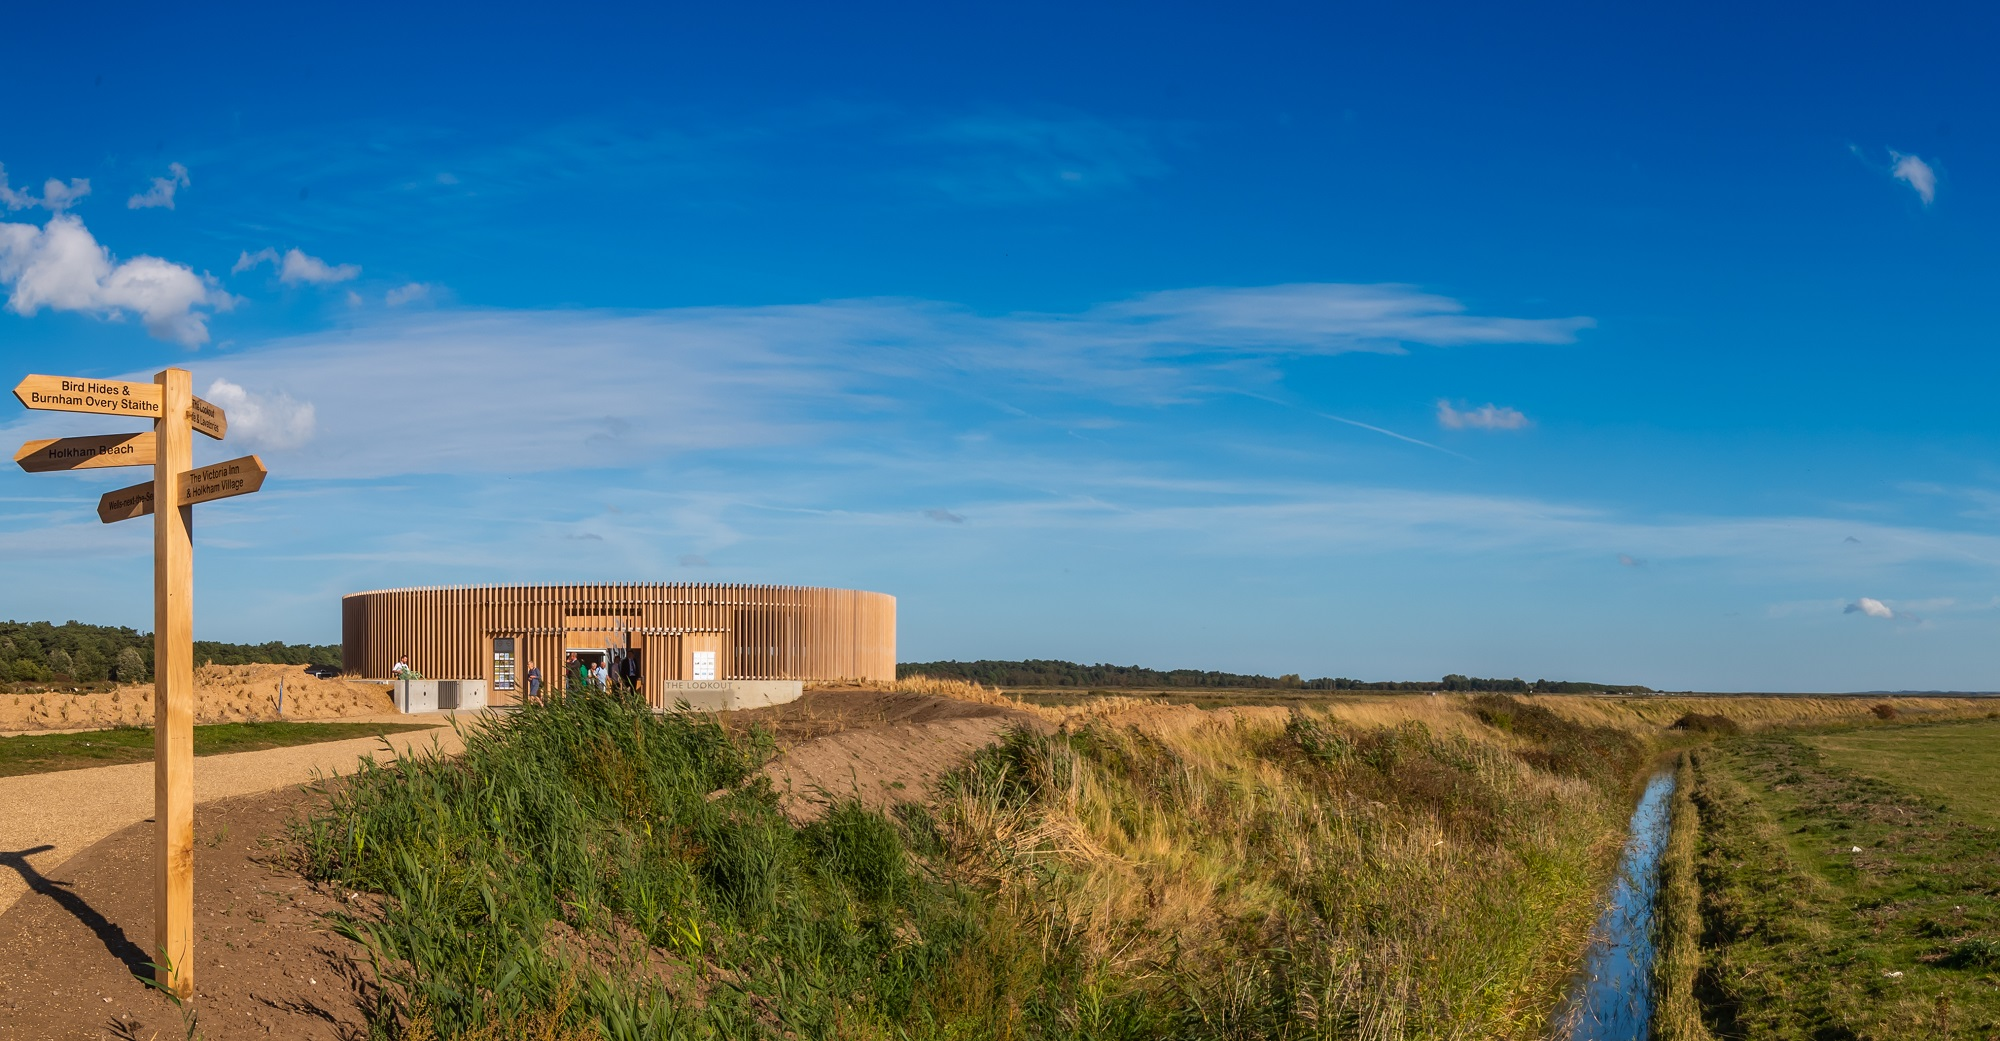 The Lookout at Holkham